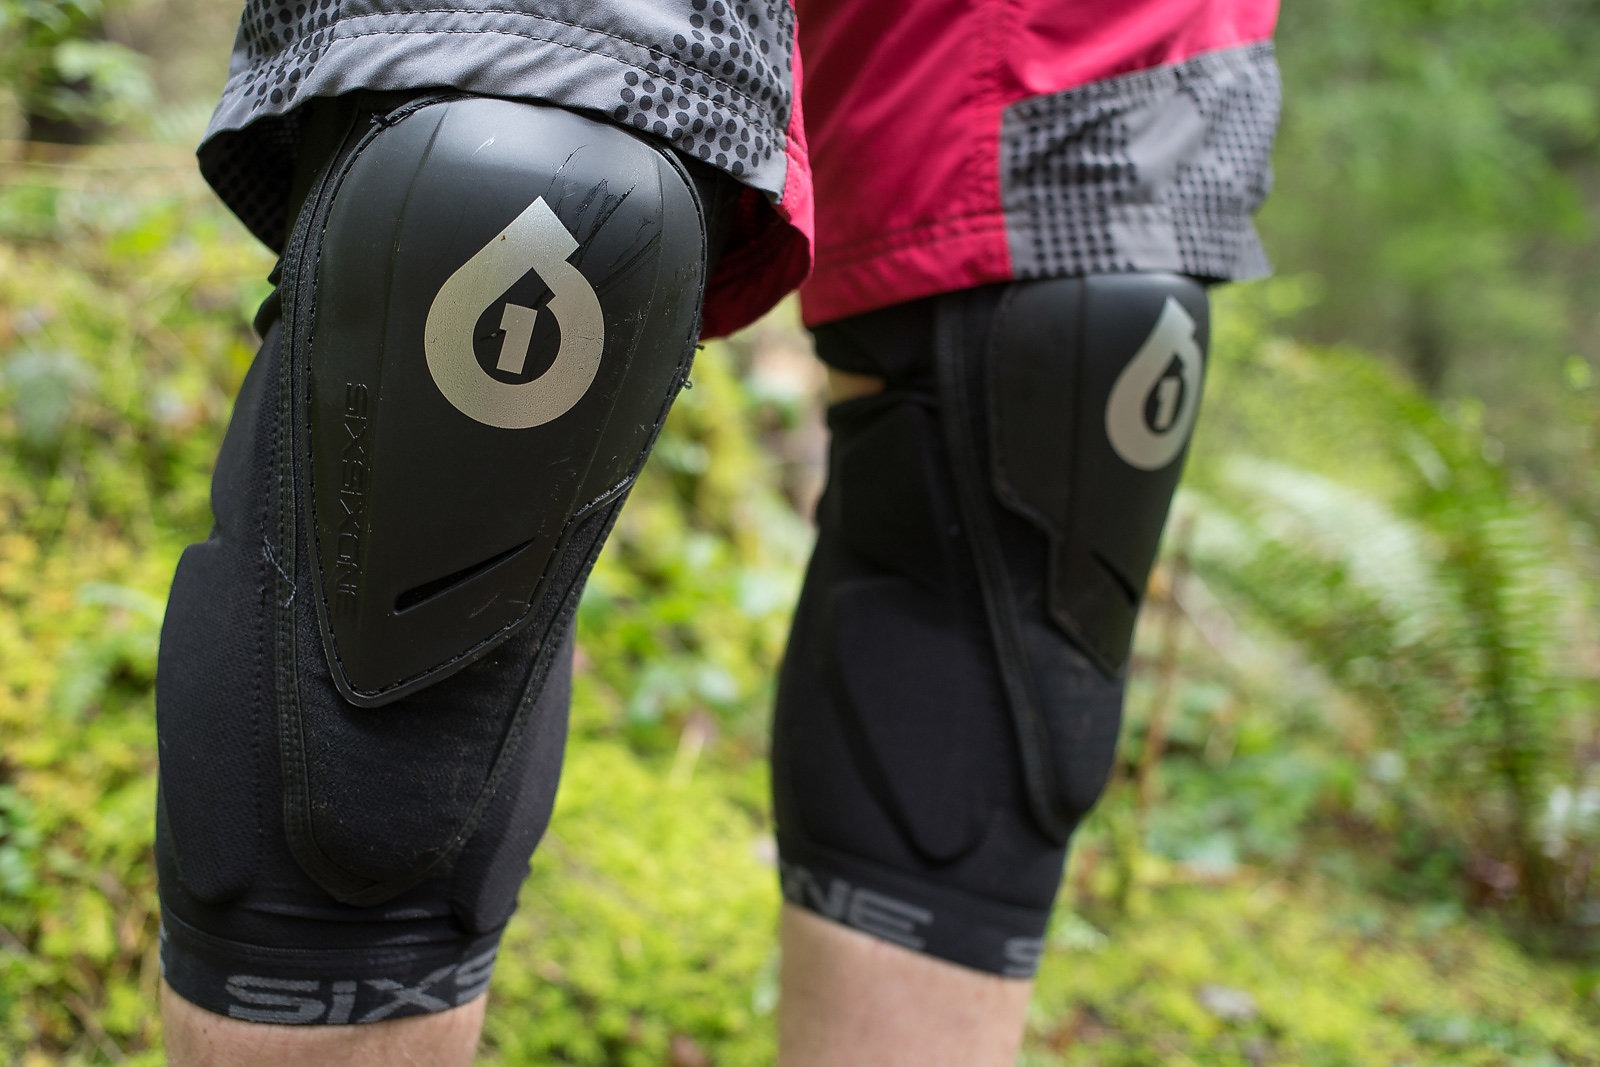 poc knee pad size guide